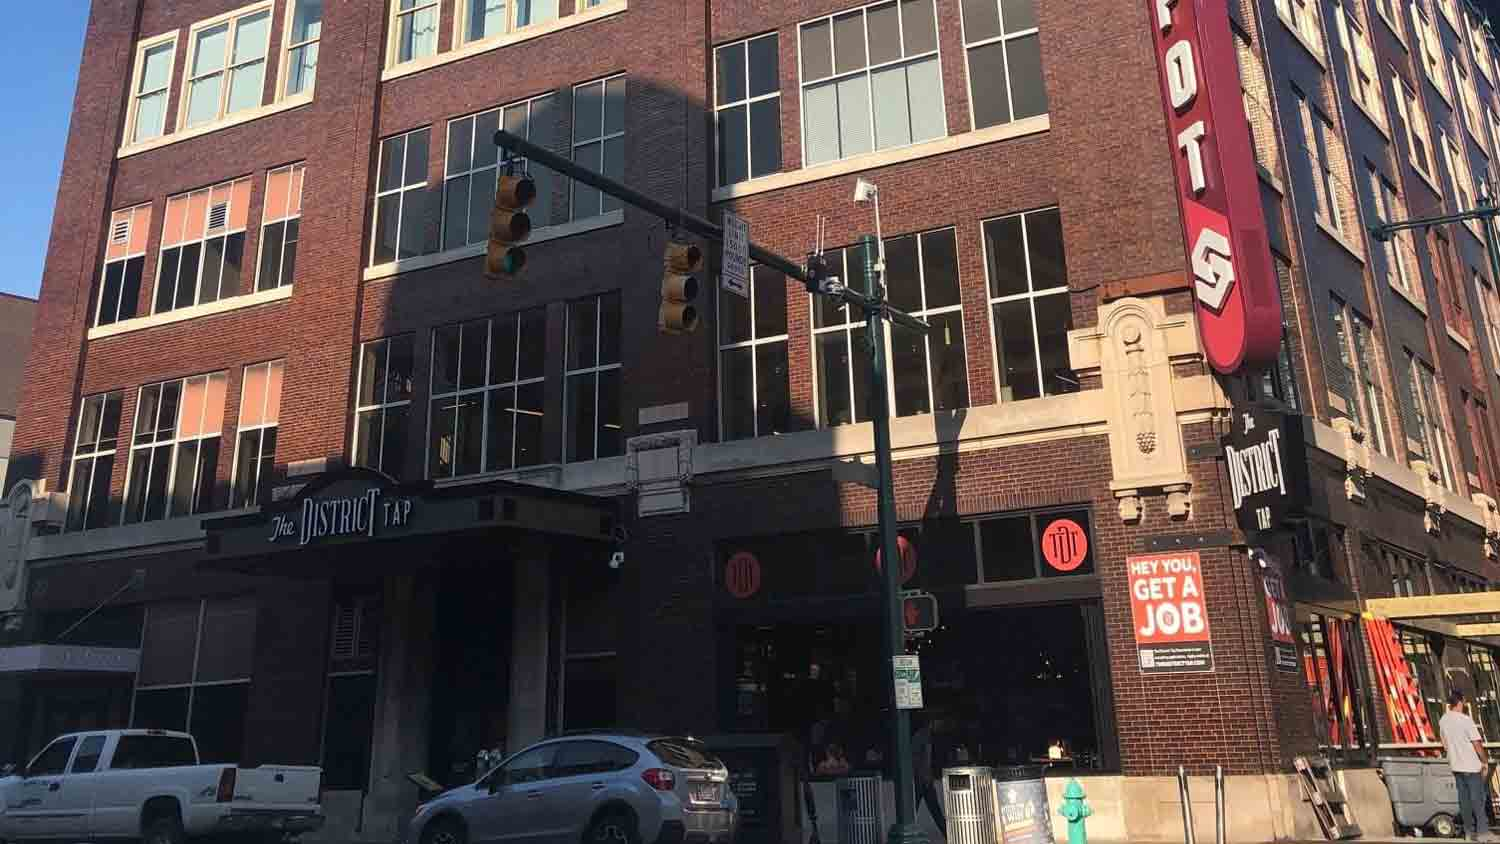 The District Tap - Downtown 3